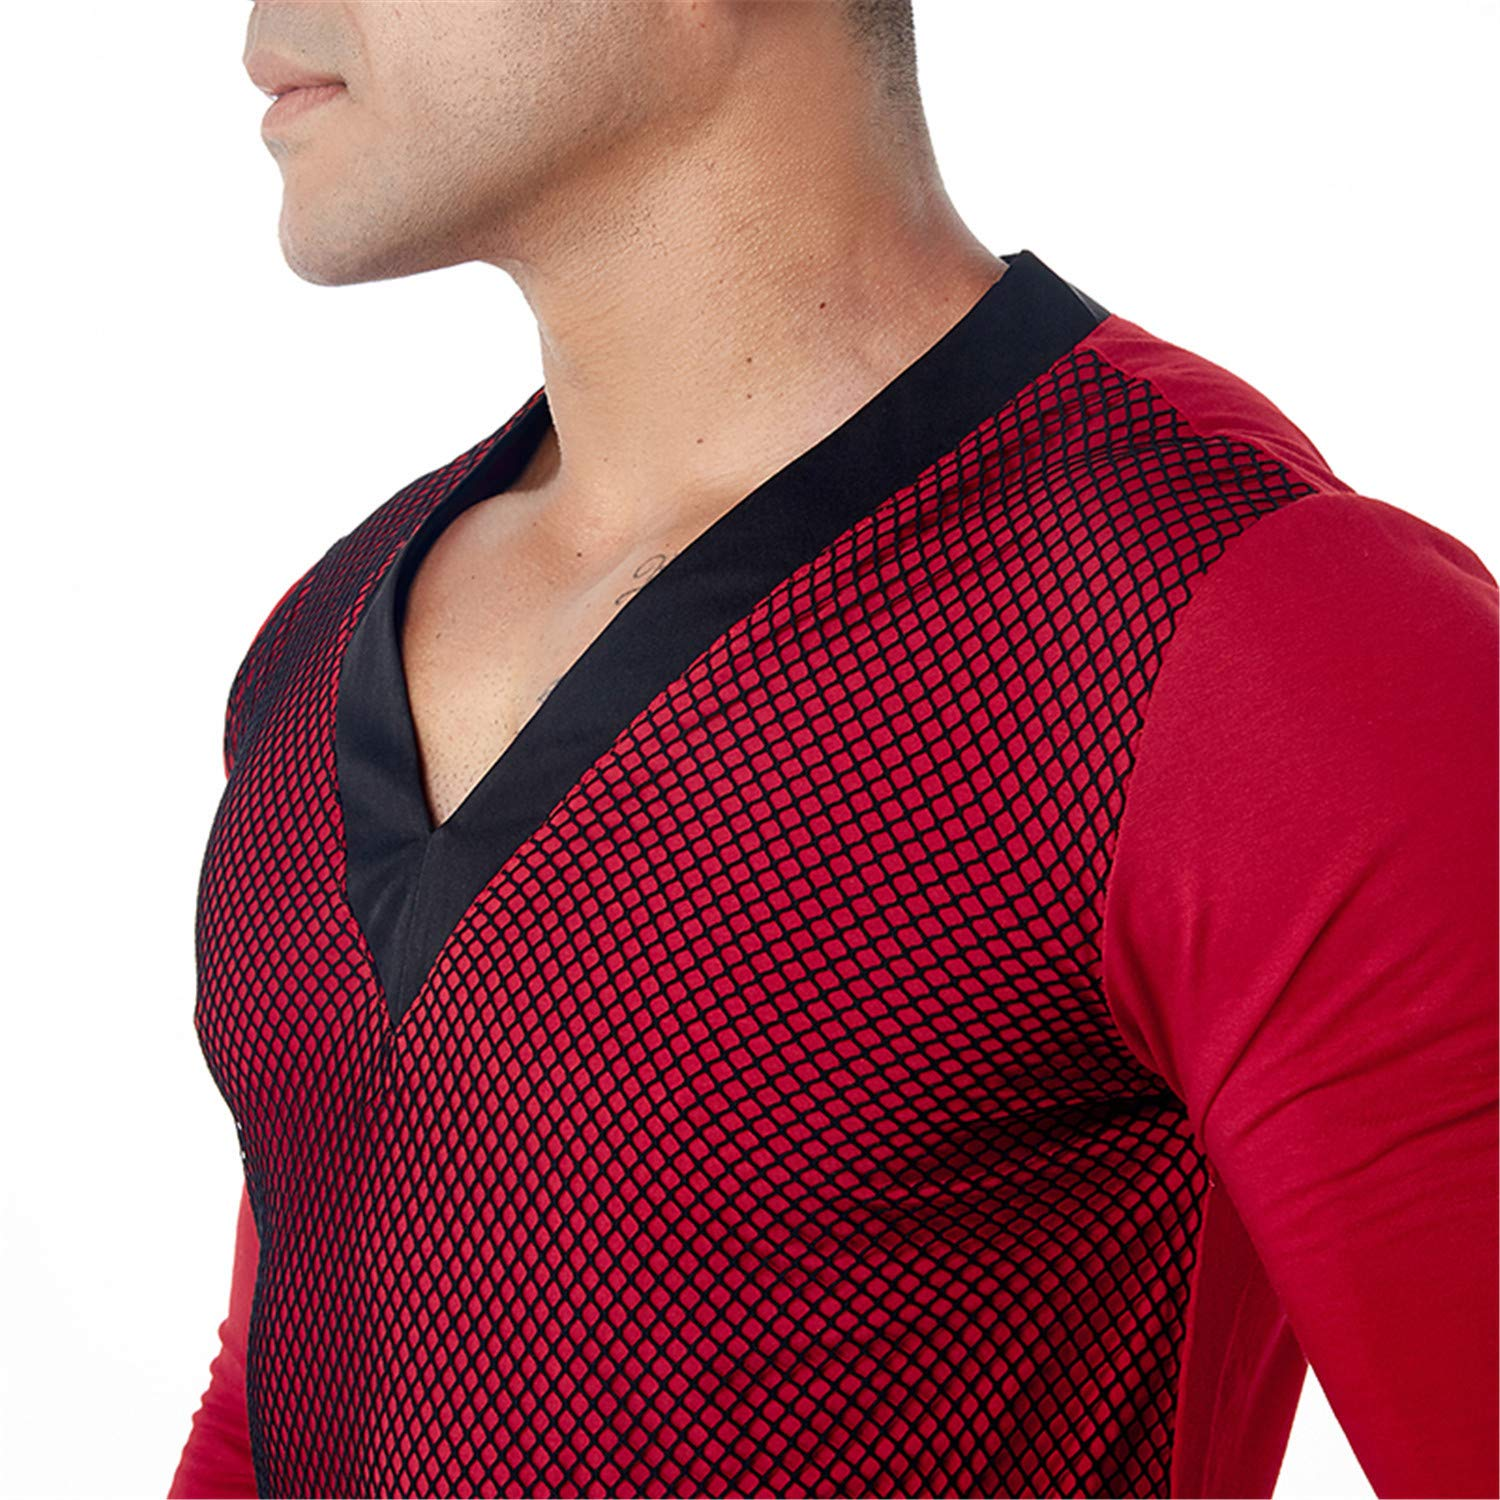 Habitaen T-Shirt Men Sheer See Through Mesh Long Sleeve T Shirt Tops Undershirt